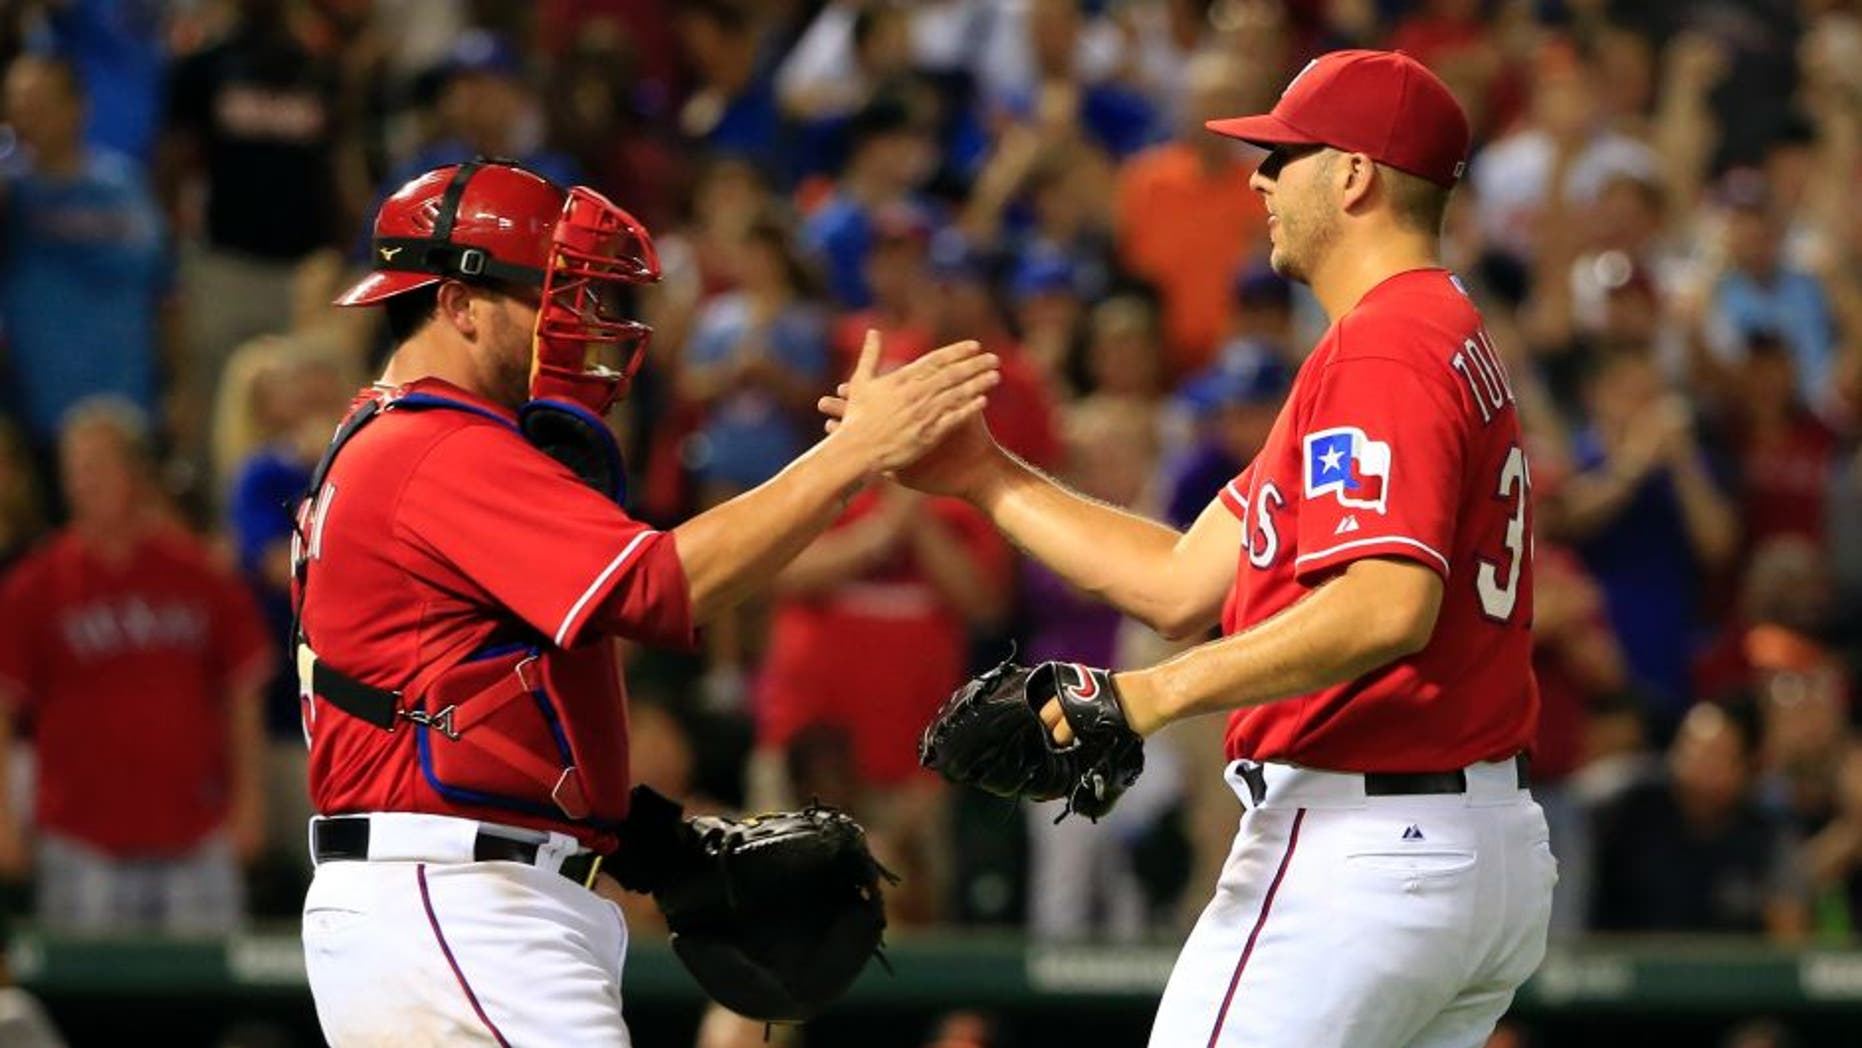 Aug 29, 2015; Arlington, TX, USA; Texas Rangers catcher Bobby Wilson (left) celebrates with relief pitcher Shawn Tolleson (37) after the victory against the Baltimore Orioles at Globe Life Park in Arlington. Mandatory Credit: Kevin Jairaj-USA TODAY Sports